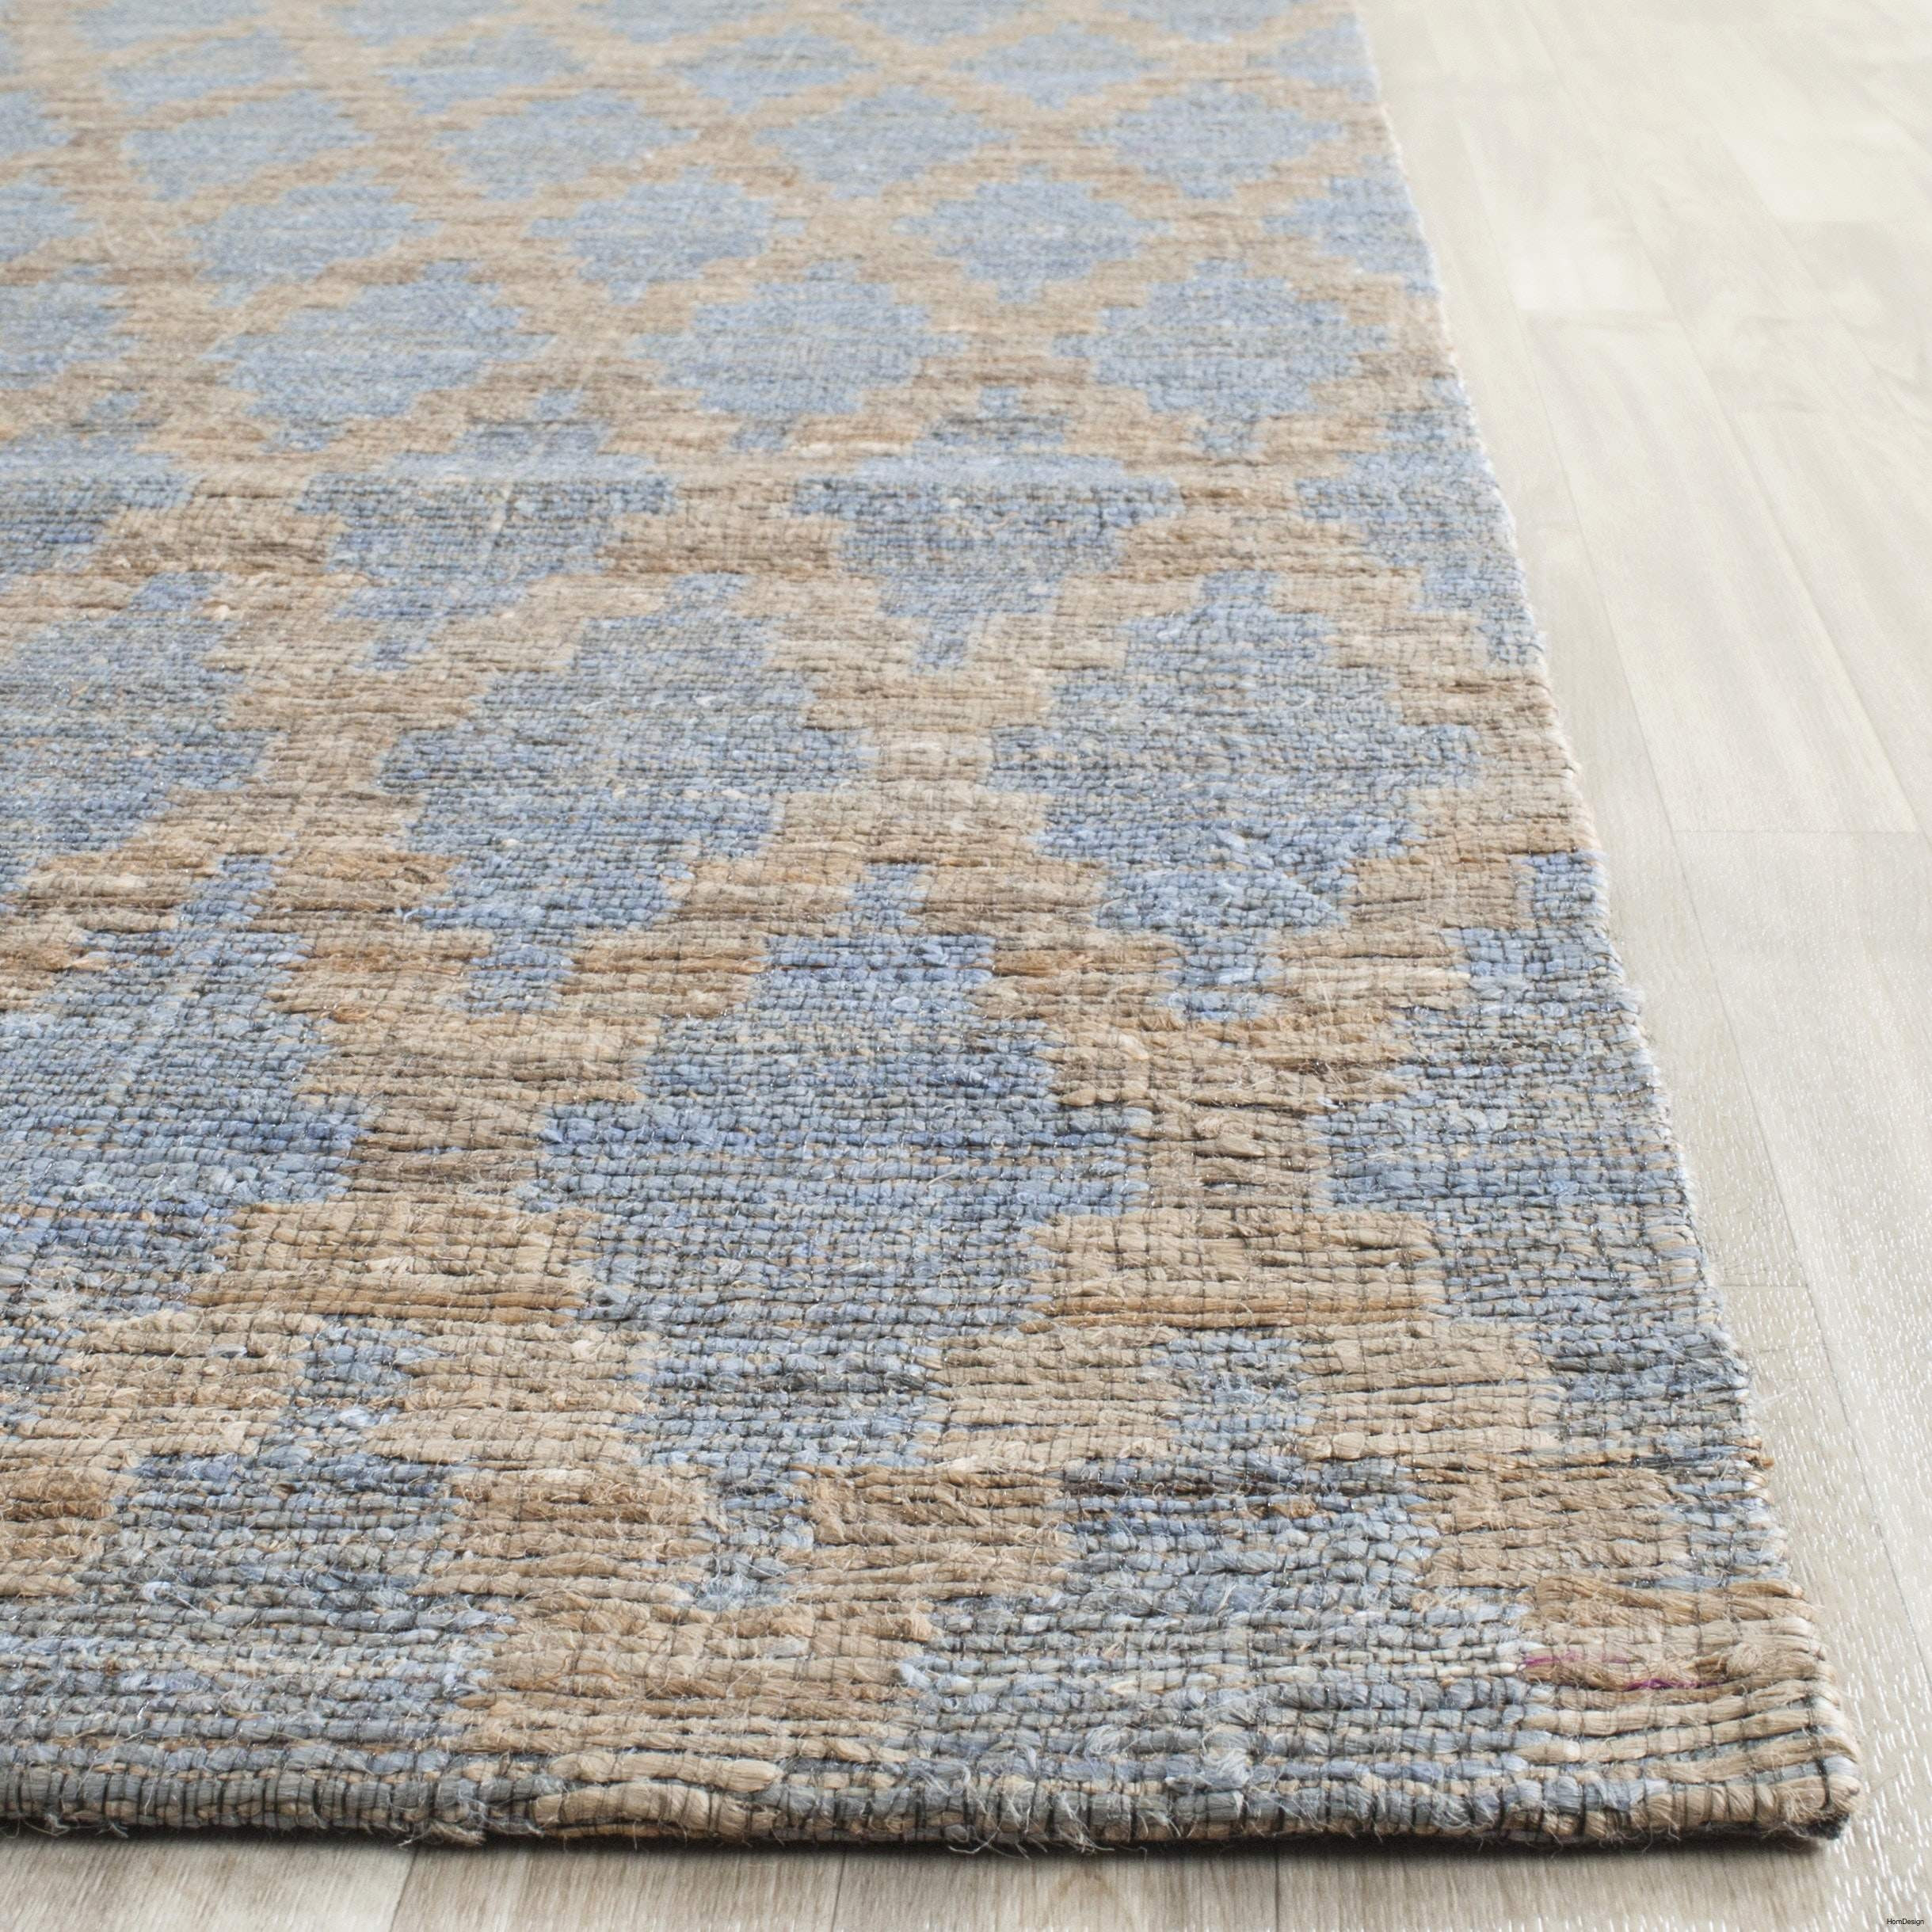 pictures of grey hardwood floors of blue and grey area rugs new area rugs for hardwood floors best jute within blue and grey area rugs elegant gray and beige area rug awesome rugged new cheap area